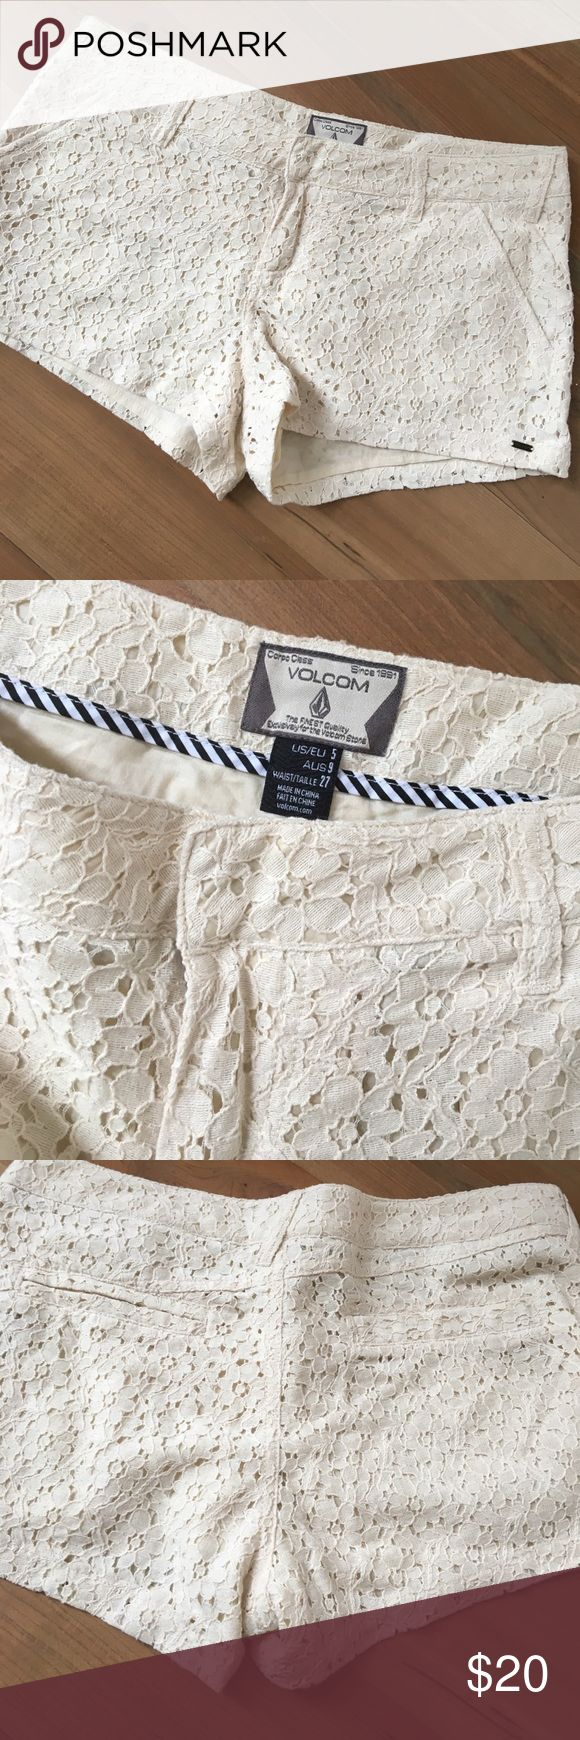 Volcom lace shorts Volcom cream colored lace shorts. So fun! Dress down with a t and flip flops or up with heels and easy top! Size 5. Waist 27. Never worn Volcom Shorts